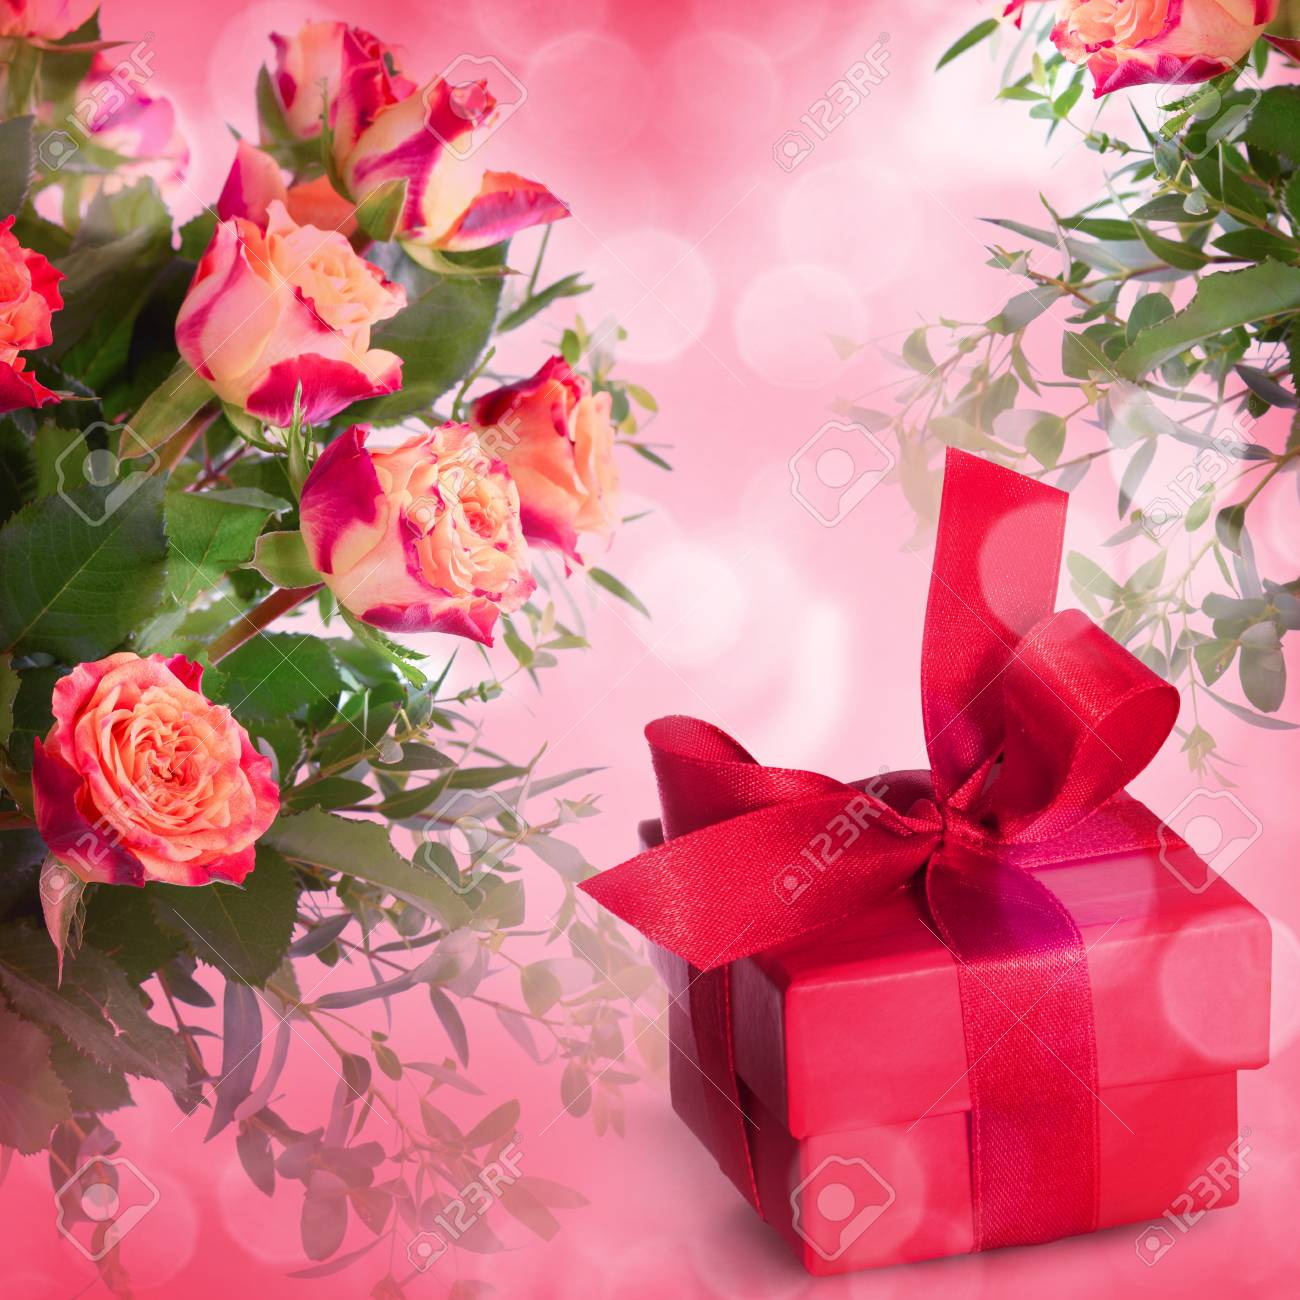 Bouquet of roses and gift box on romantic background - 43347793